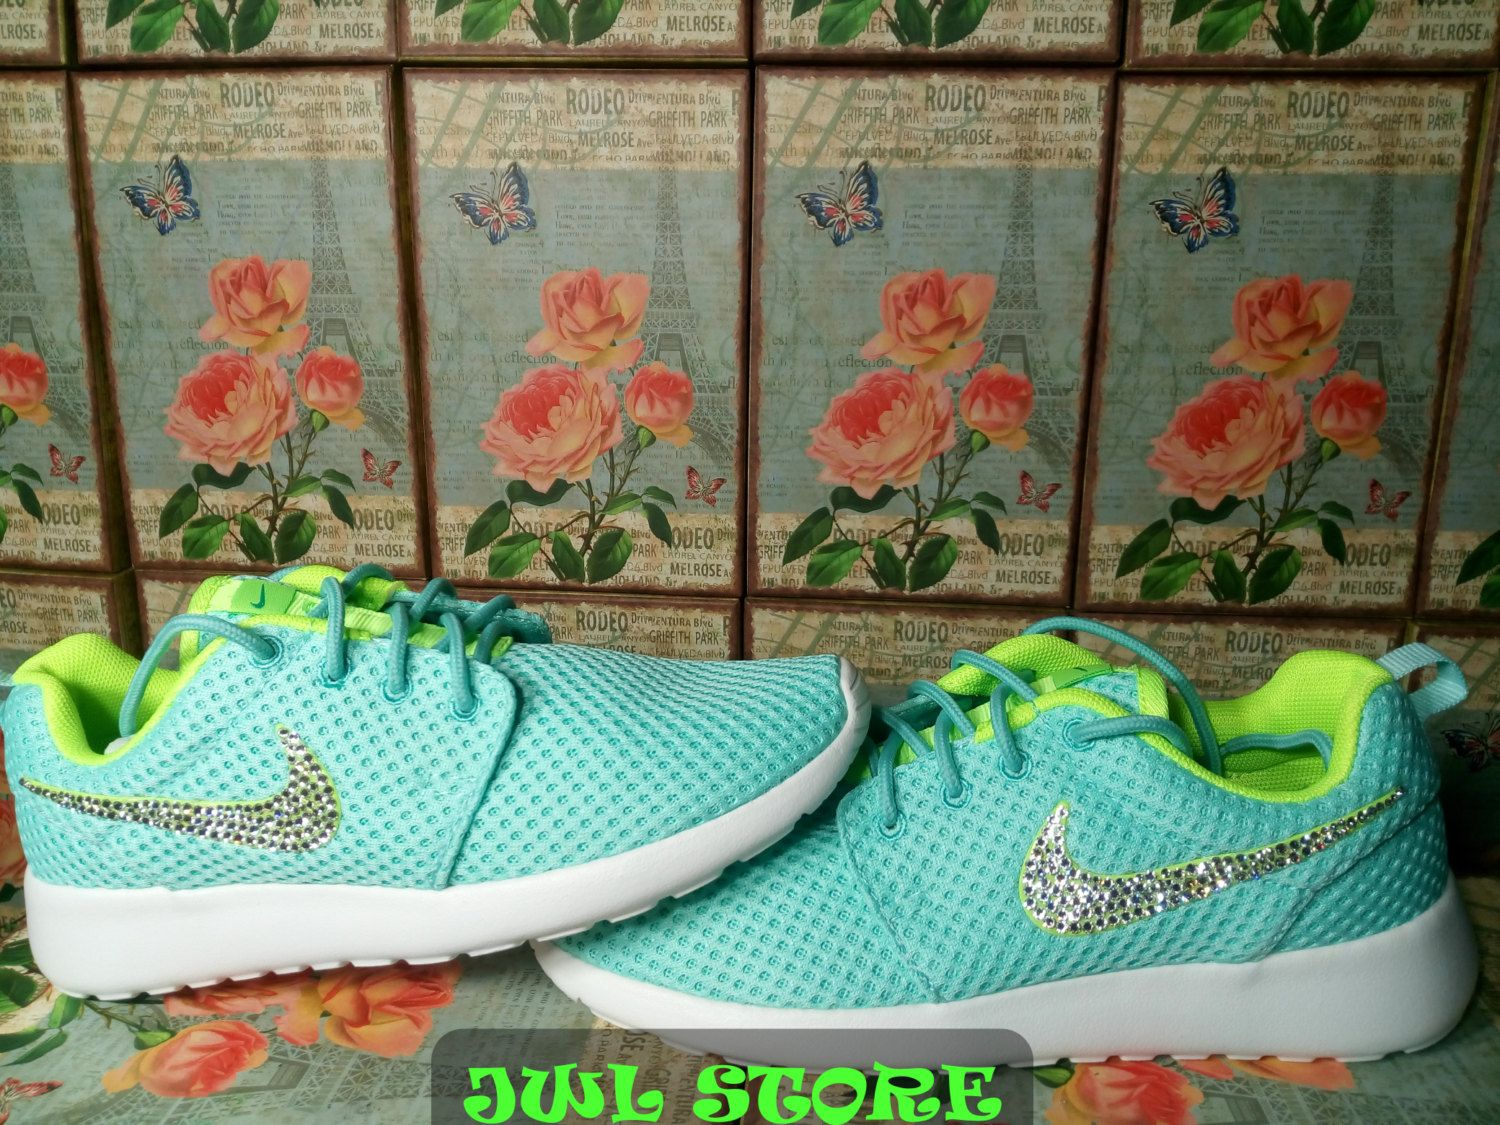 e893d021854d sale 20% off last pair swarovski blinged nike roshe run women shoes light green  color customized with swarovski crystal athletic shoes by jwlstore on Etsy